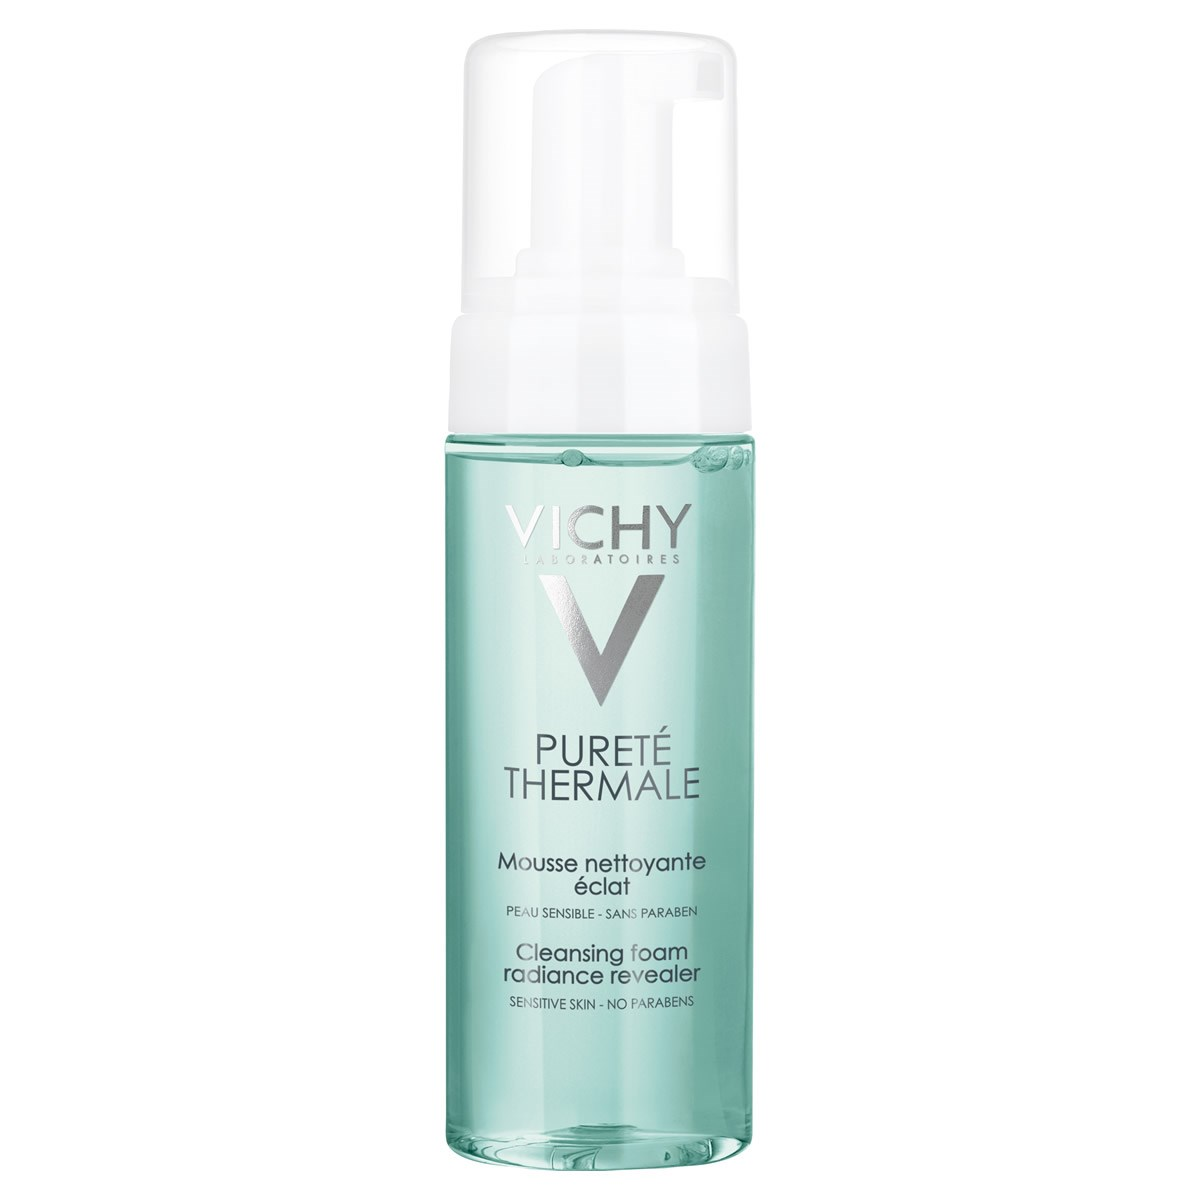 Vichy Purete Thermale Cleansing Foam Radiance Revealer